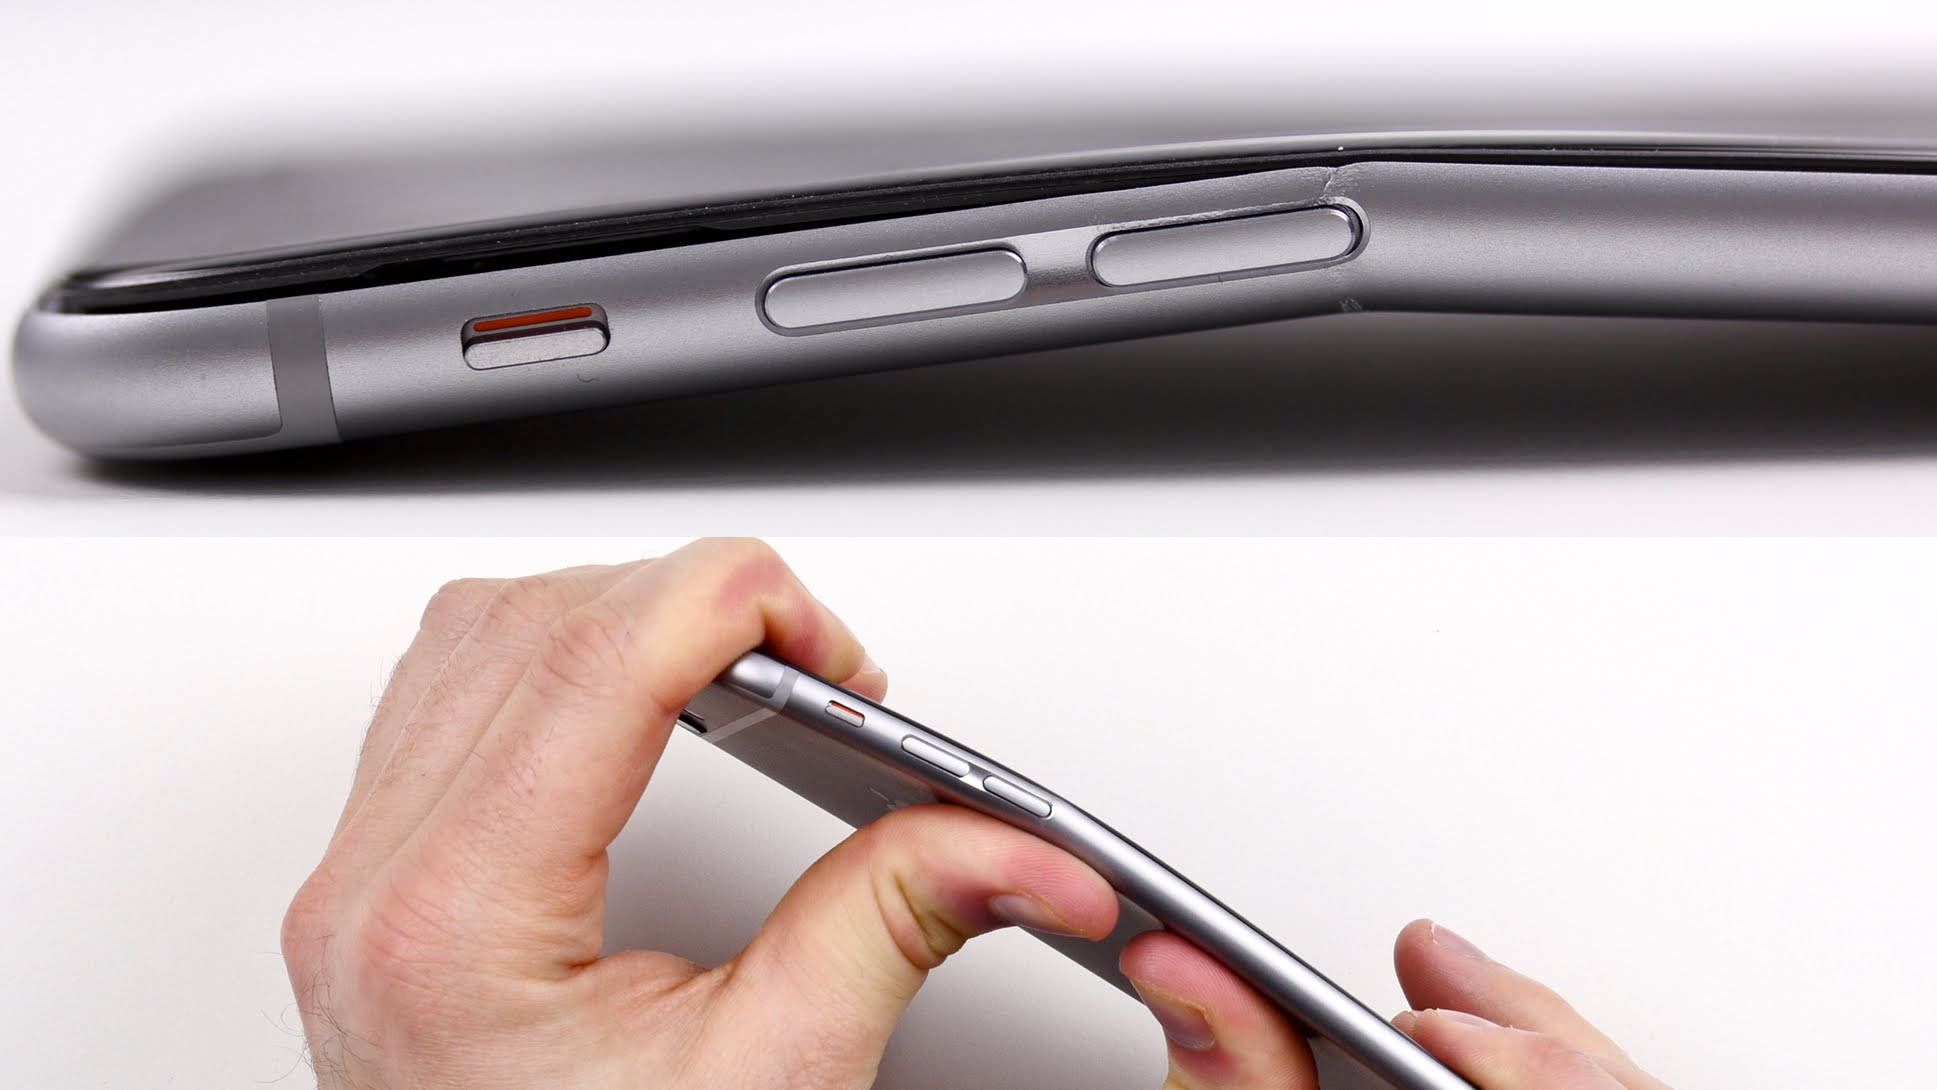 0c1fea4710 Opinion: Why the iPhone 6 bends and why it wouldn't be an issue if Apple  addressed it properly